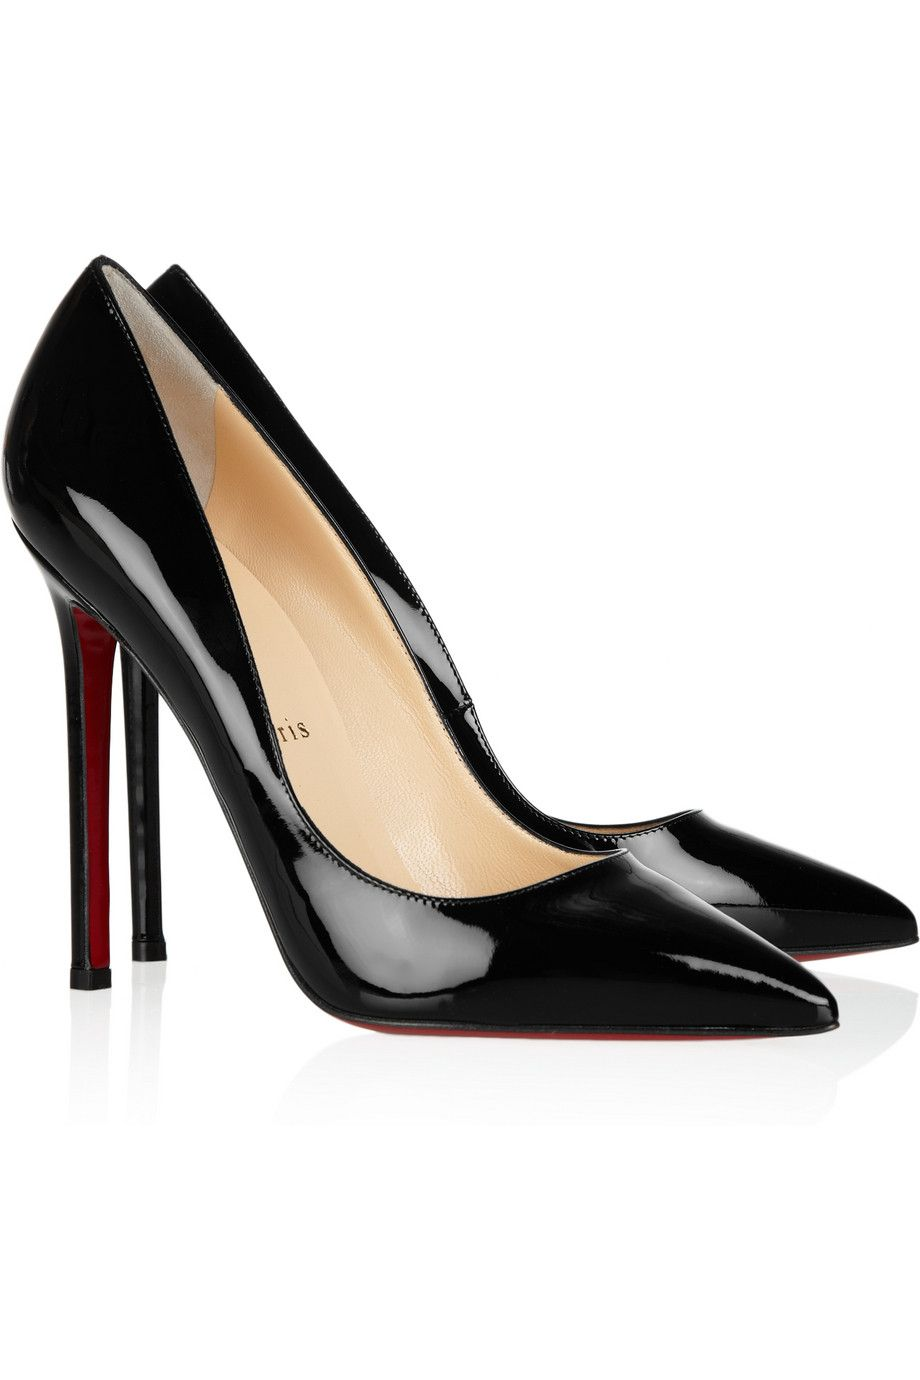 32ae1554e71 I heart these classic shoes...one day... Christian Louboutin Pigalle 120  patent leather pumps